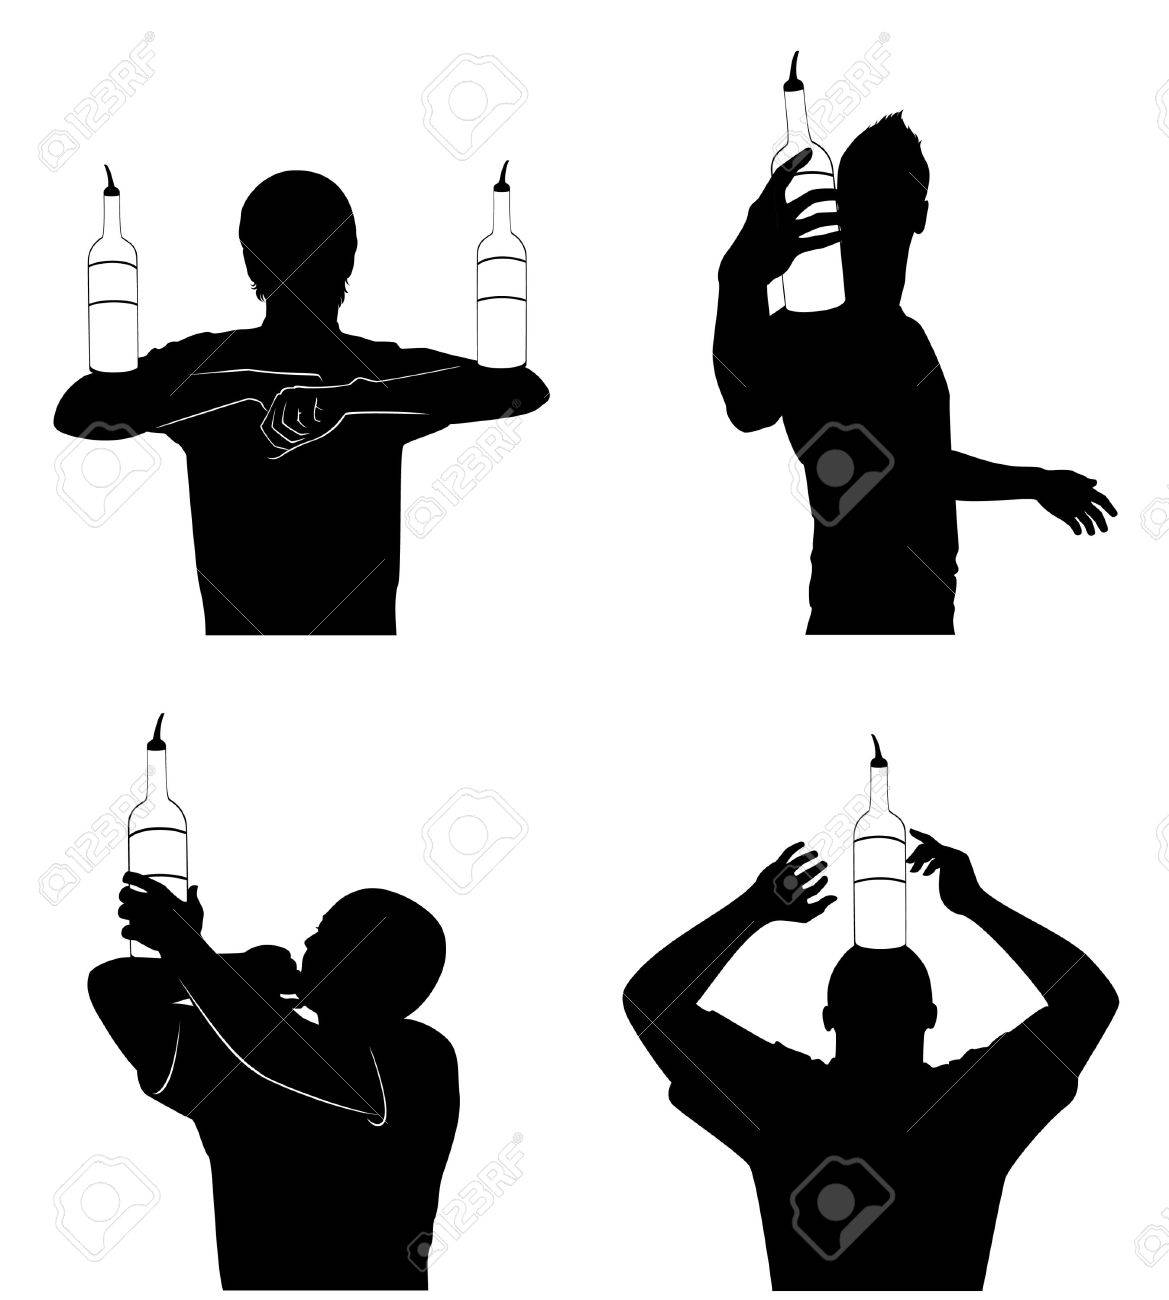 silhouette of barman showing tricks with a bottle Stock Photo - 7685944